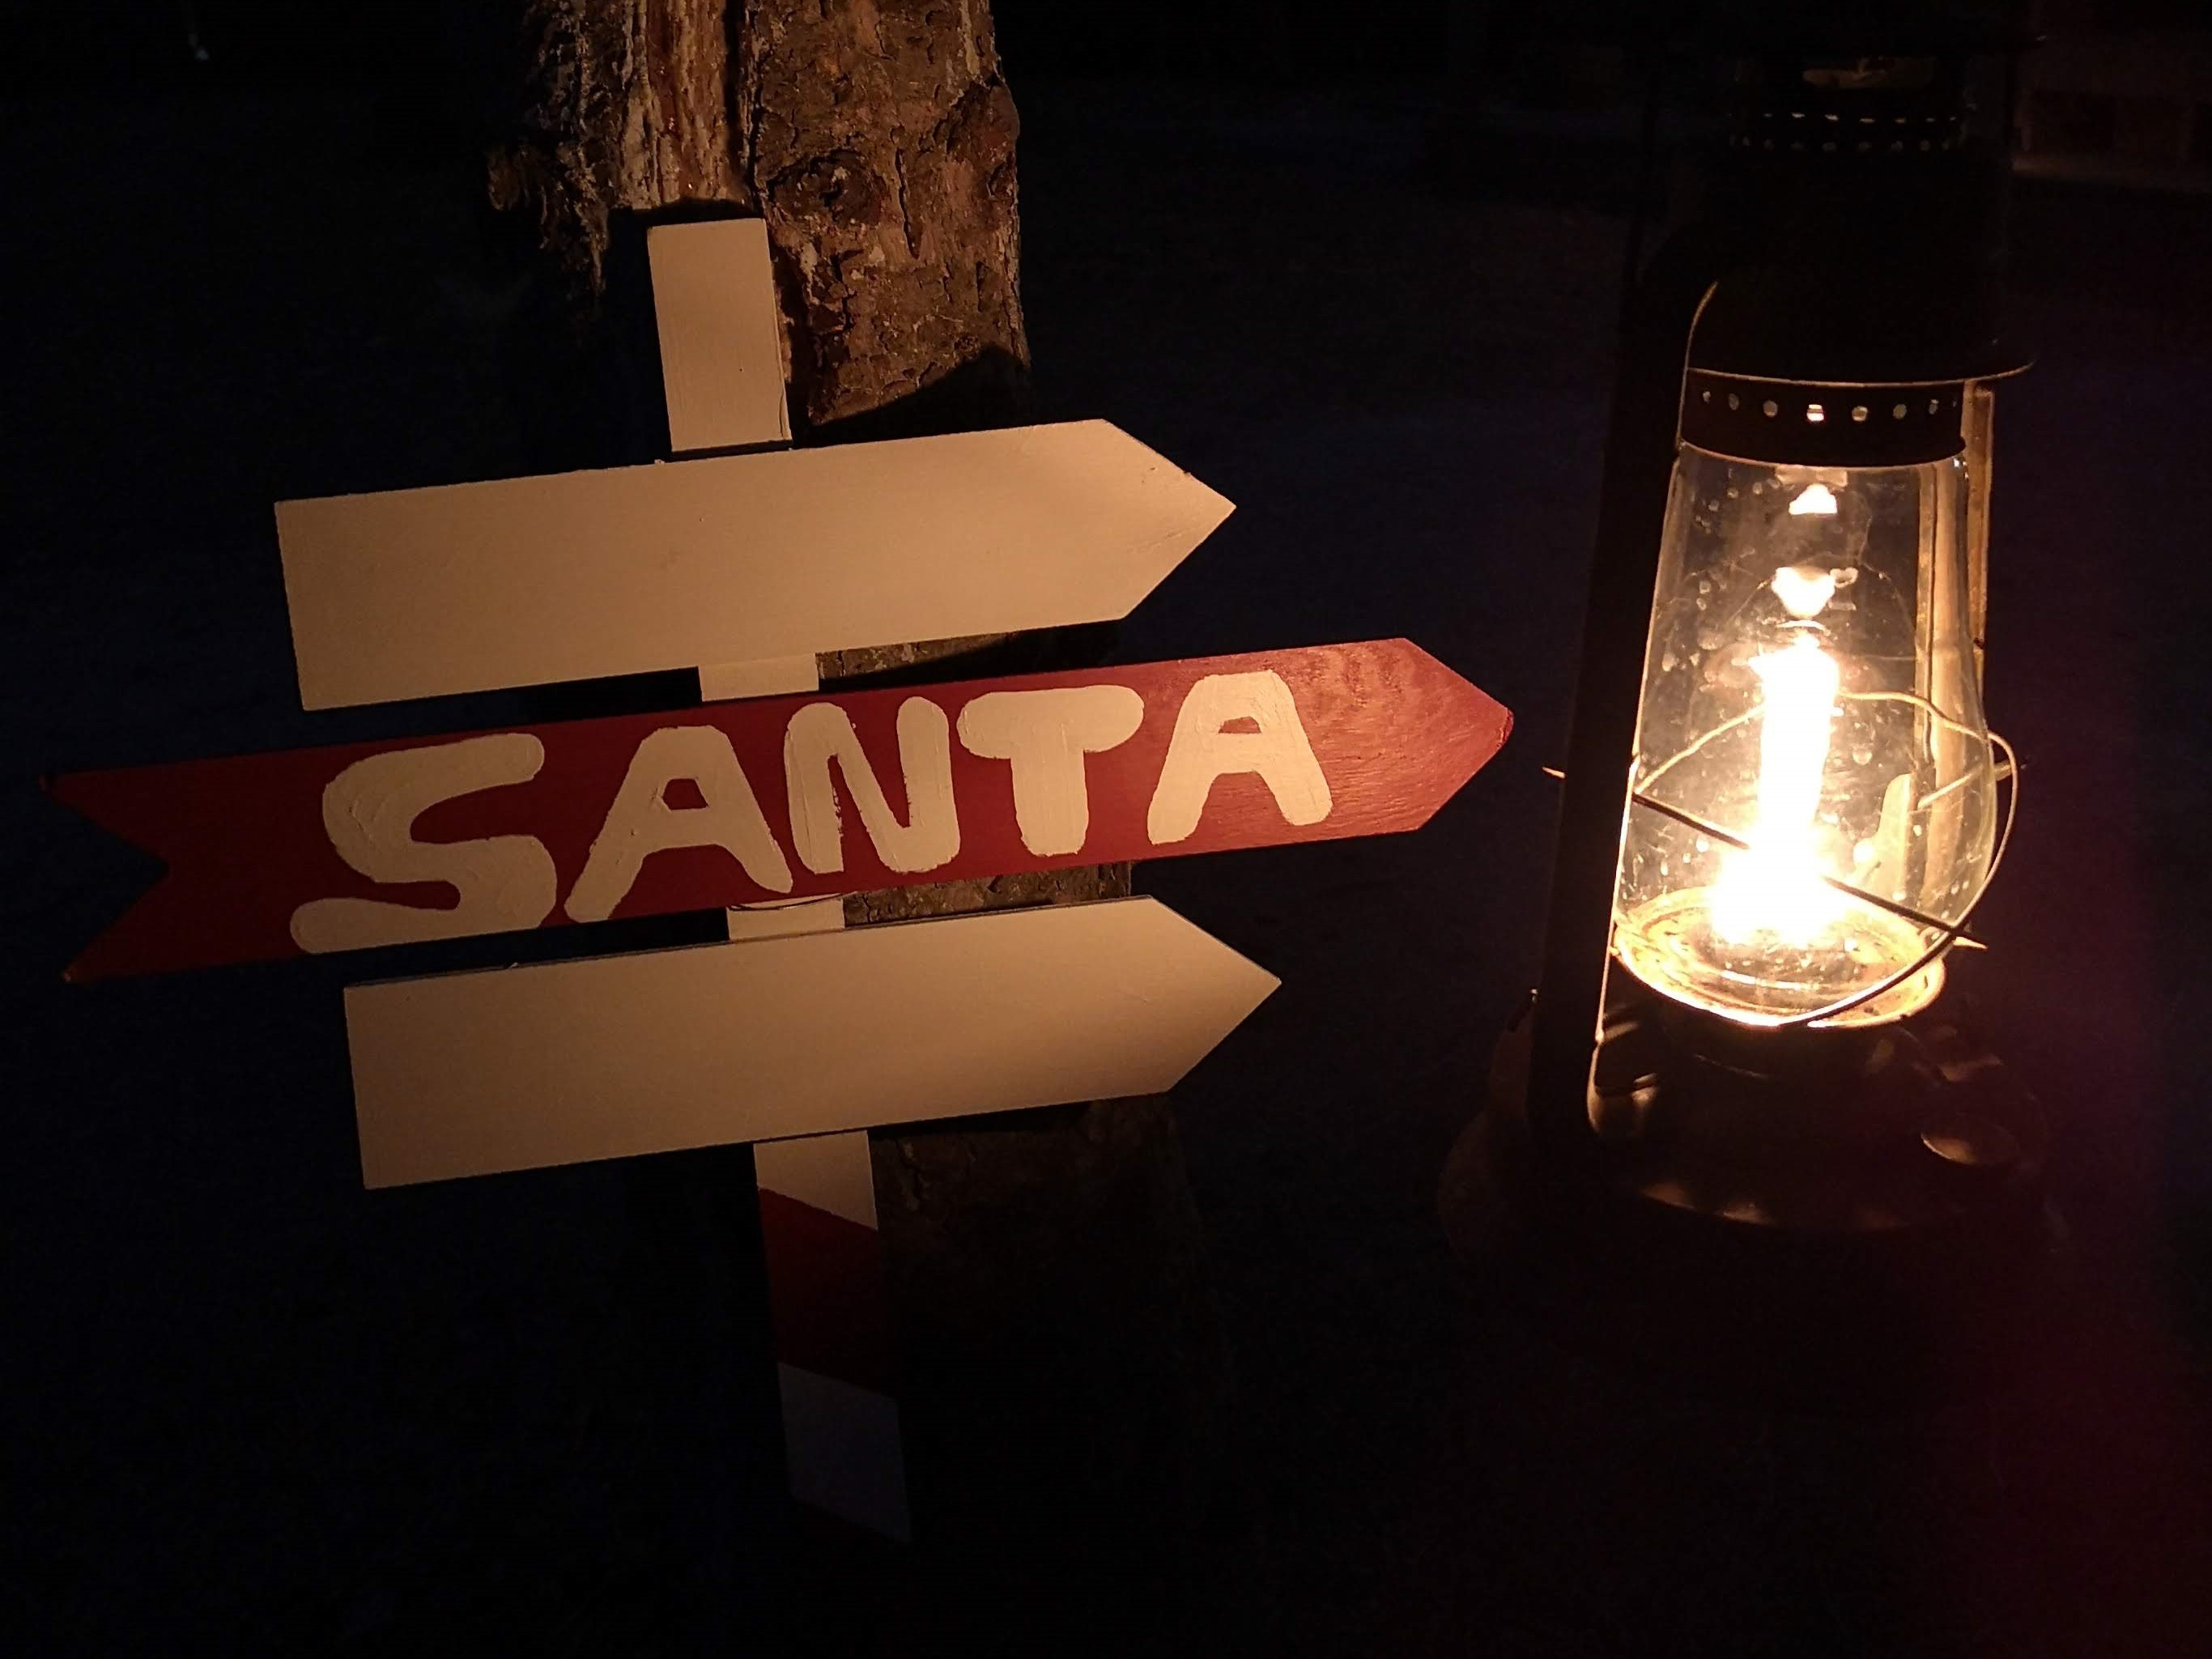 A sign pointing to the direction of Santa Clause